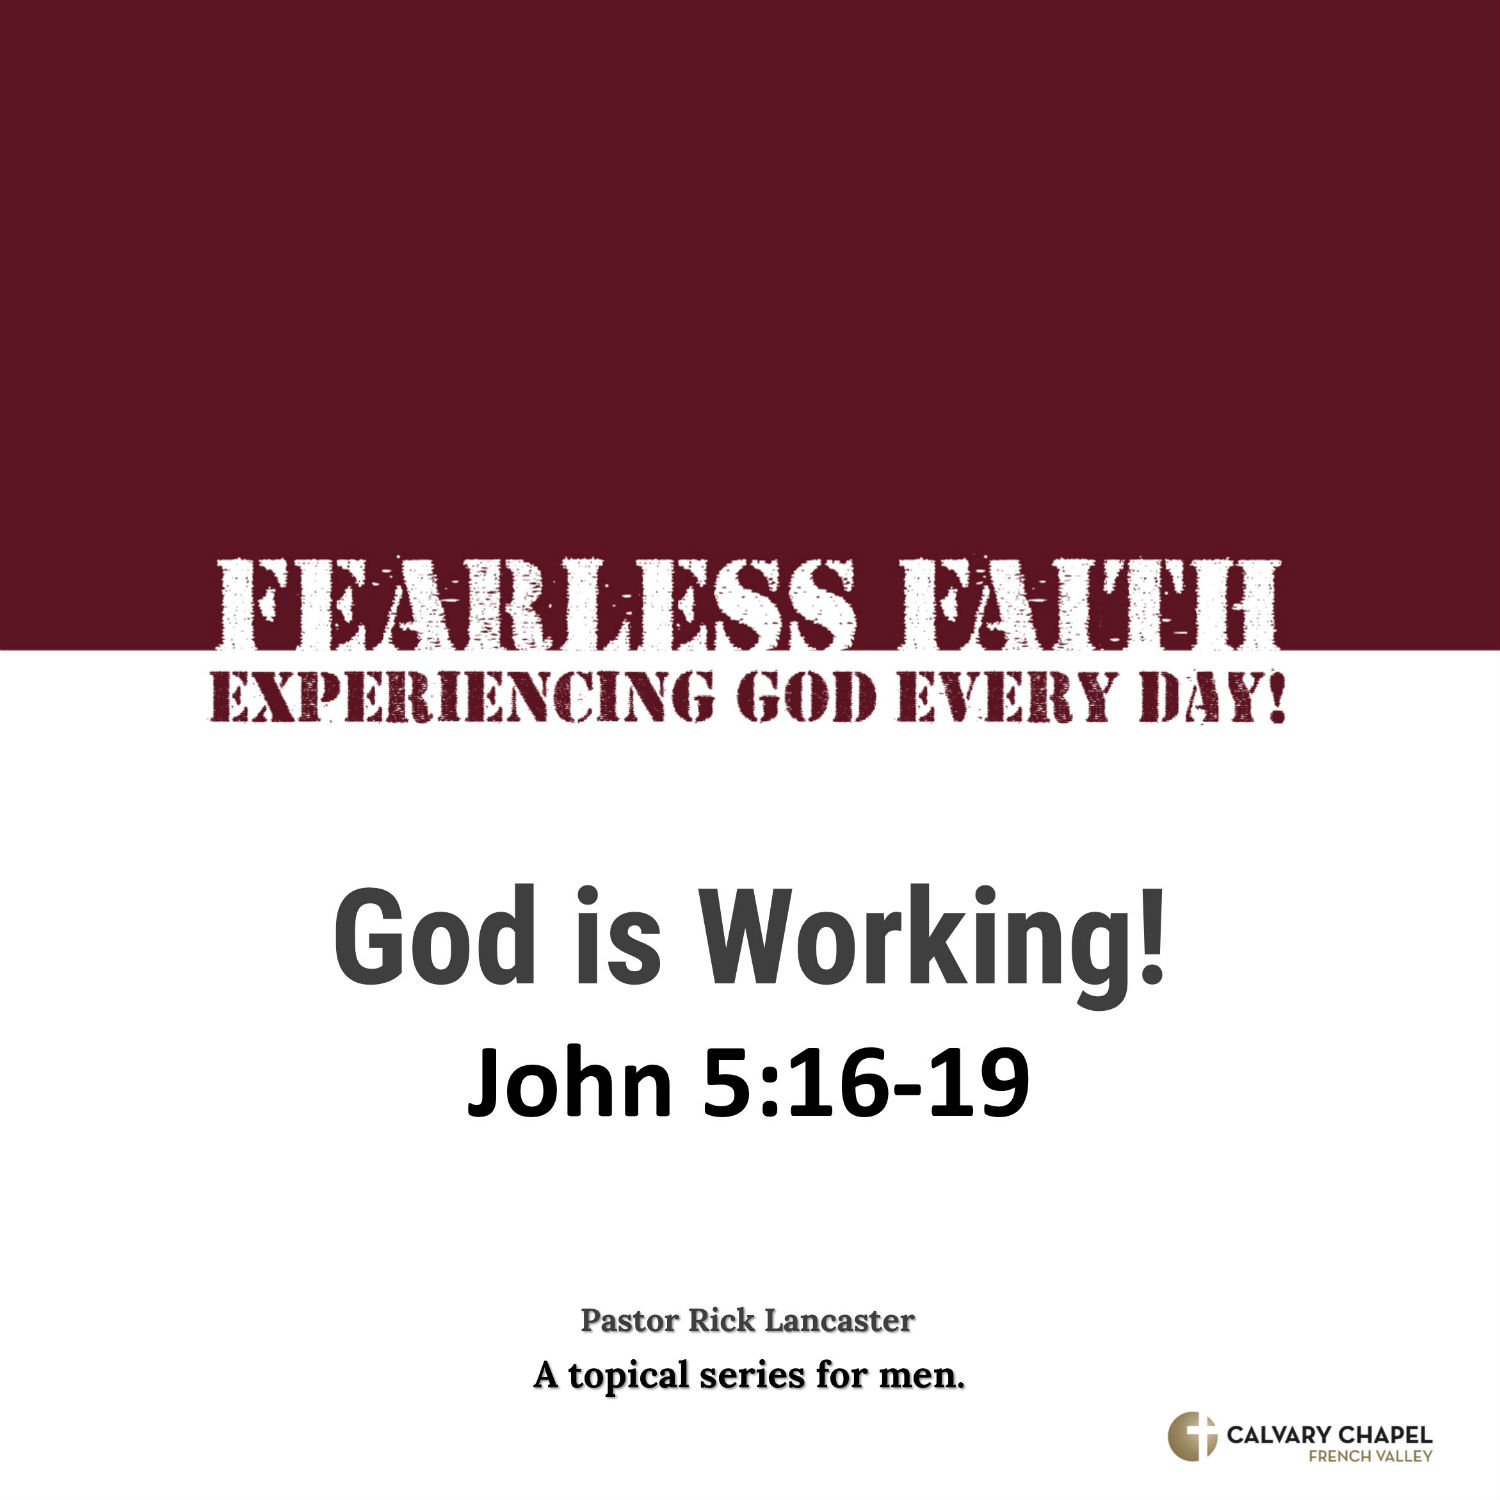 God is Working! – John 5:16-19 Image